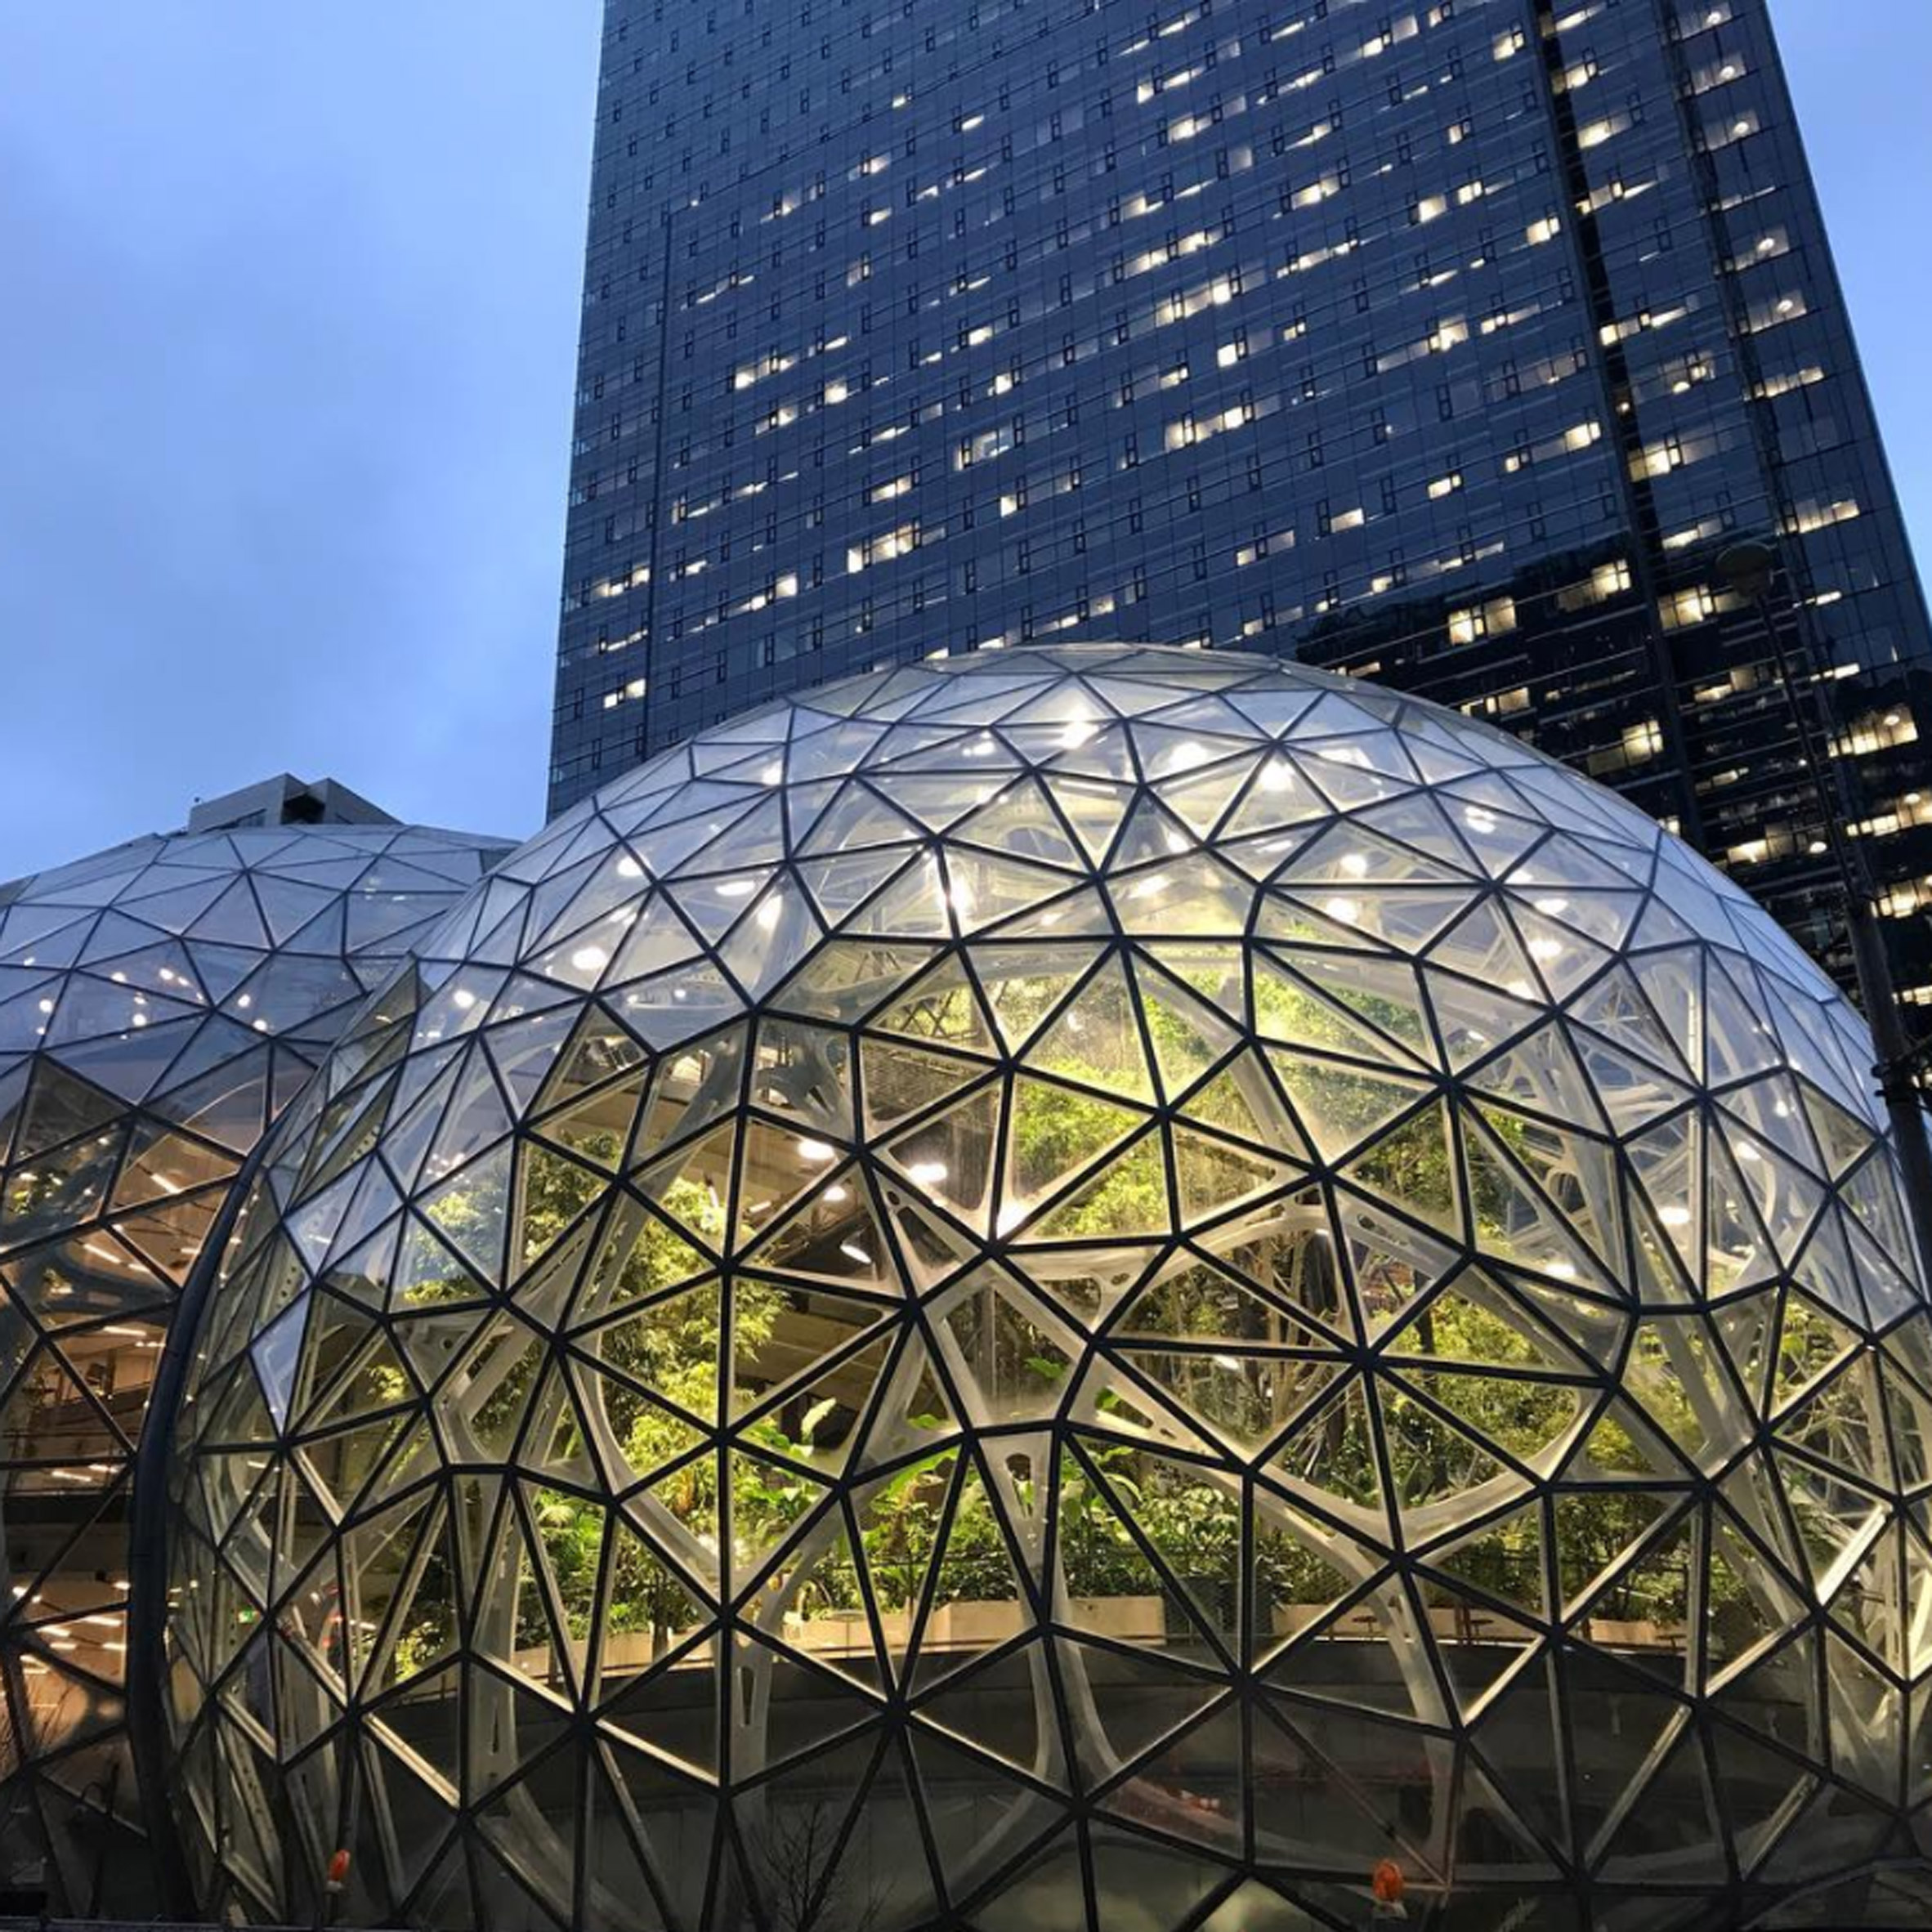 Spherical architecture: Amazon Spheres, by NBBJ